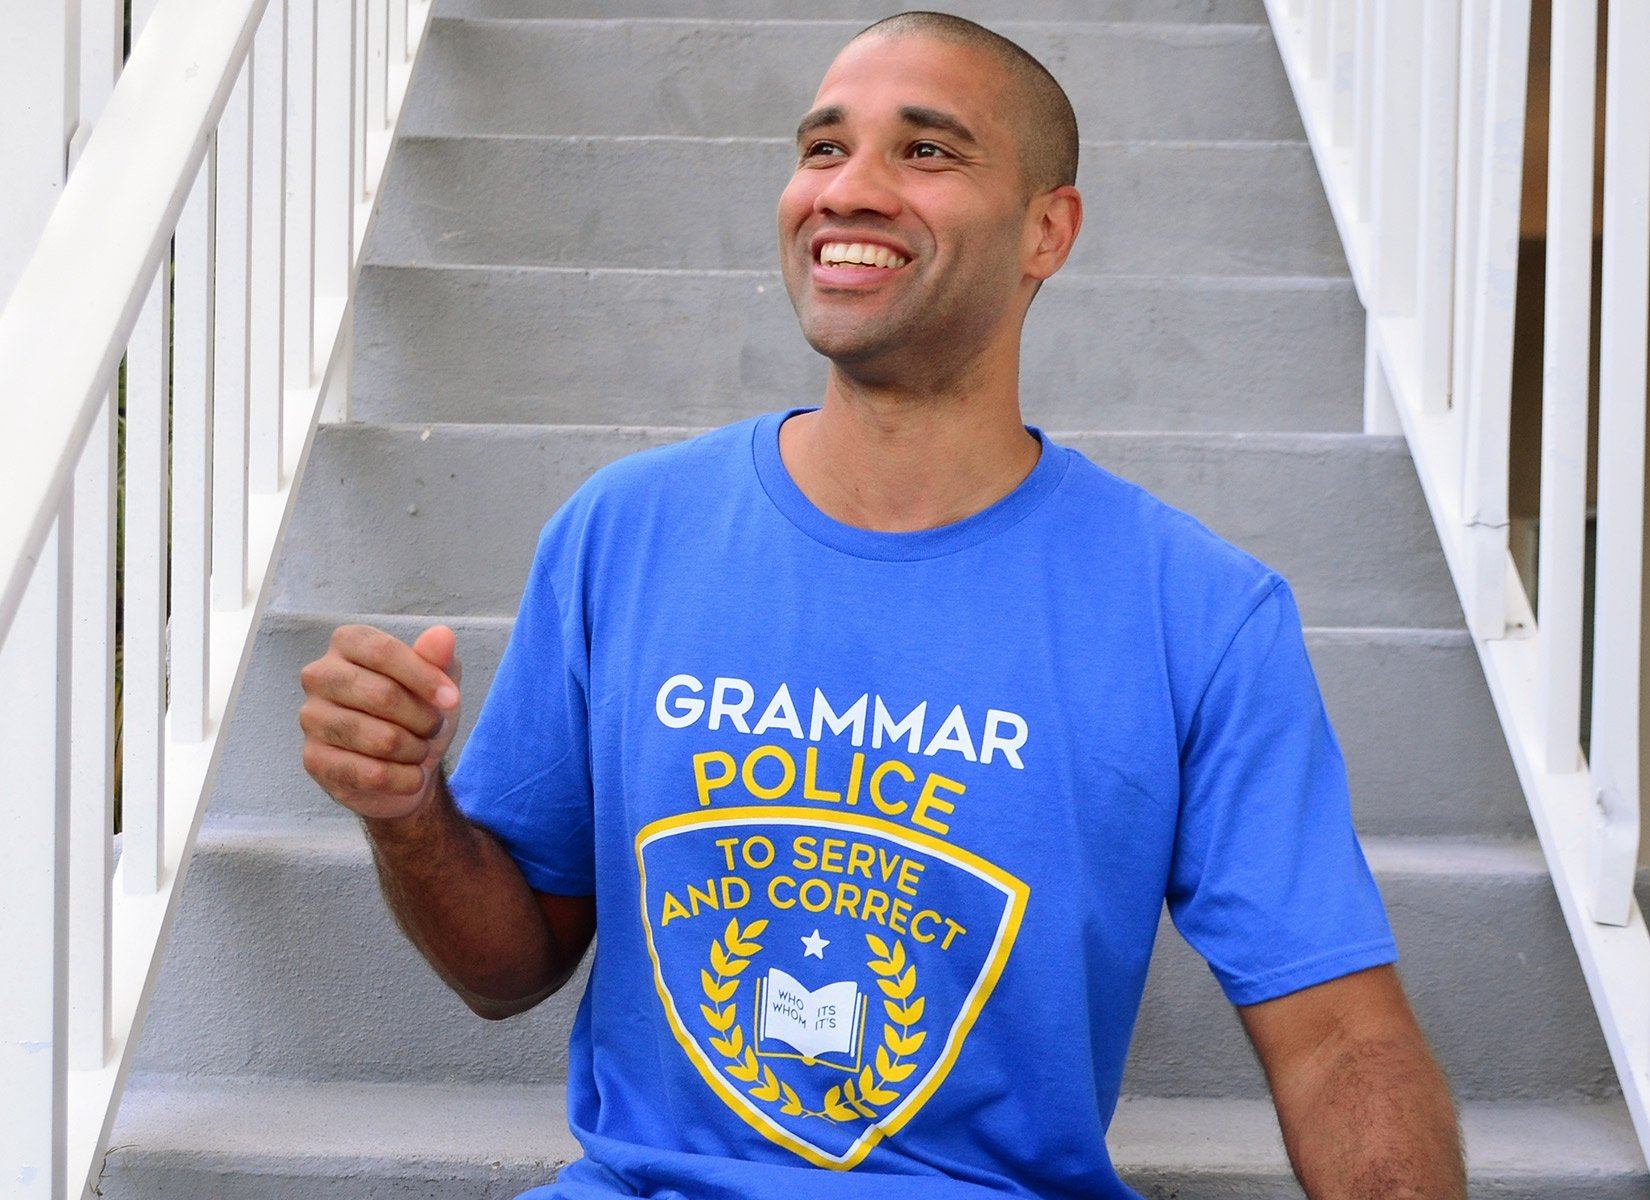 Grammar Police on Mens T-Shirt